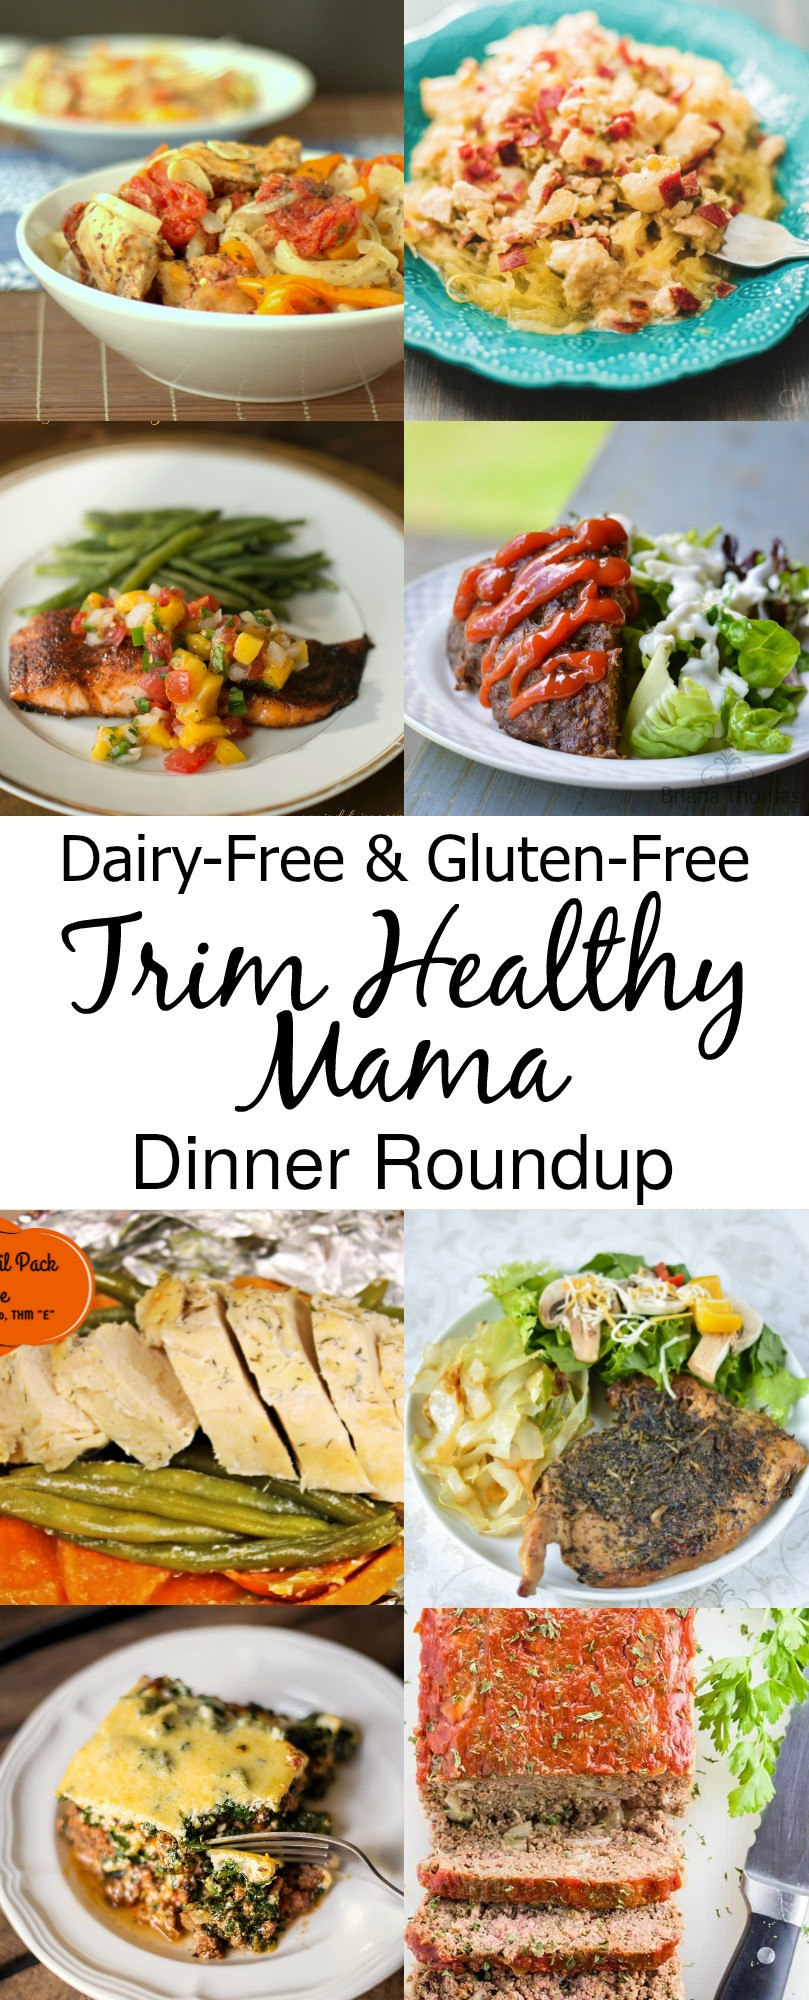 Gluten Free Dairy Free Dinner Recipes  Dairy Free and Gluten Free Trim Healthy Mama Dinners